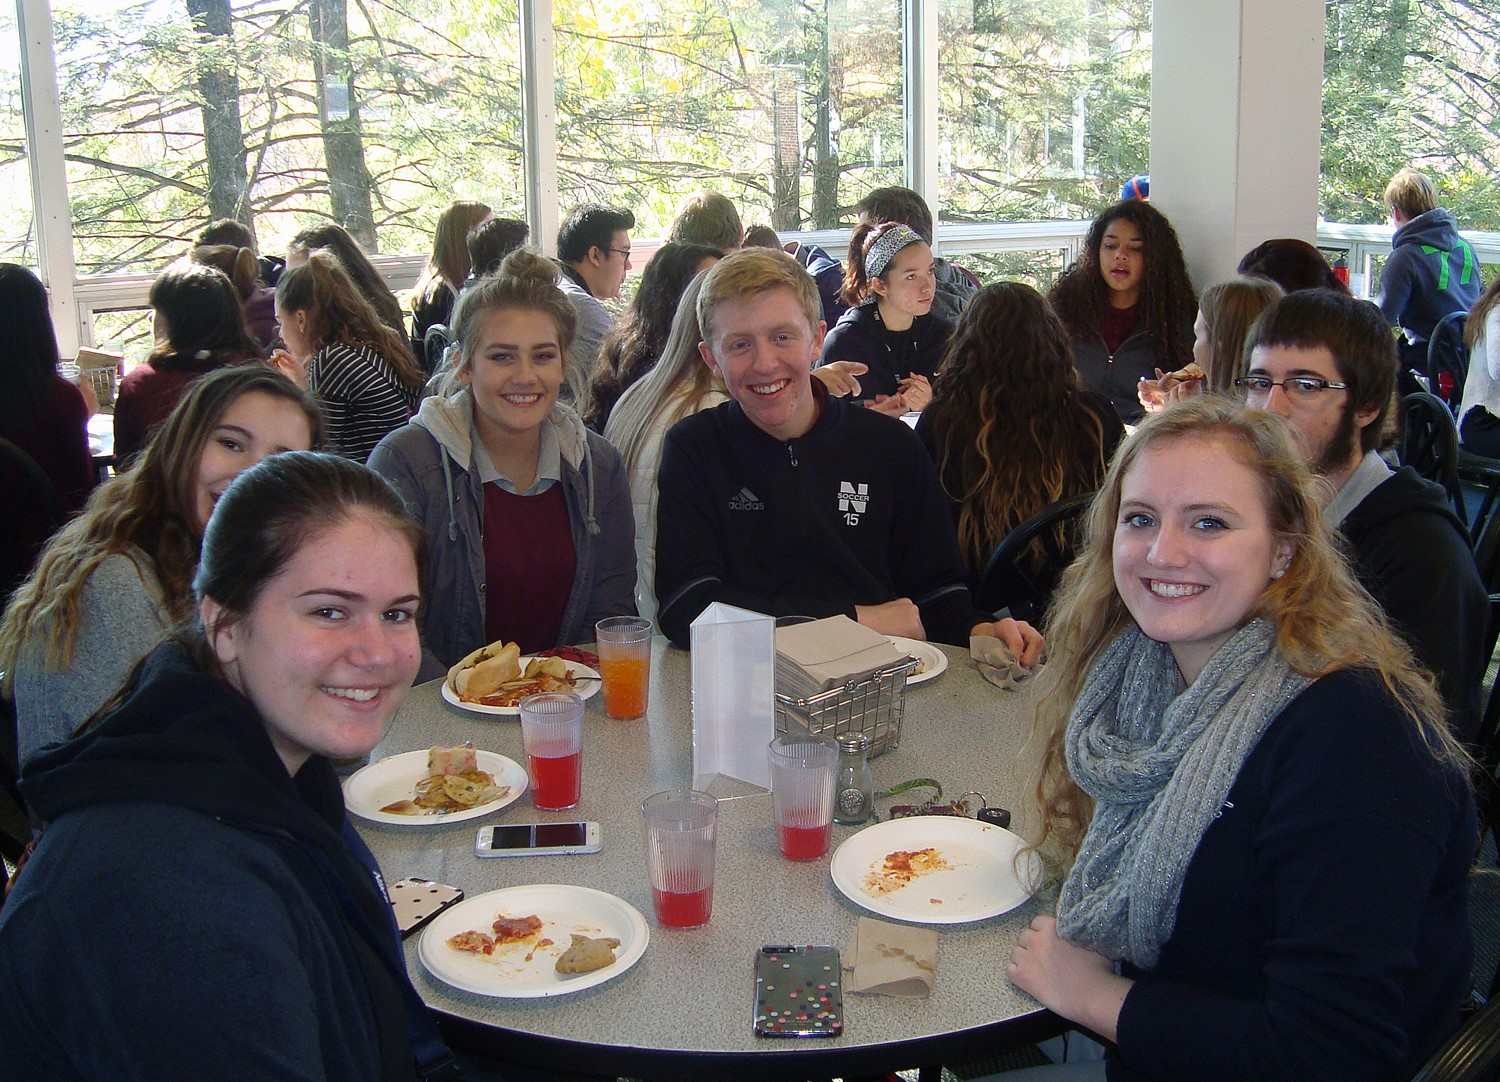 This group of juniors loved checking out the Denison campus.  Lunch was especially a big hit!